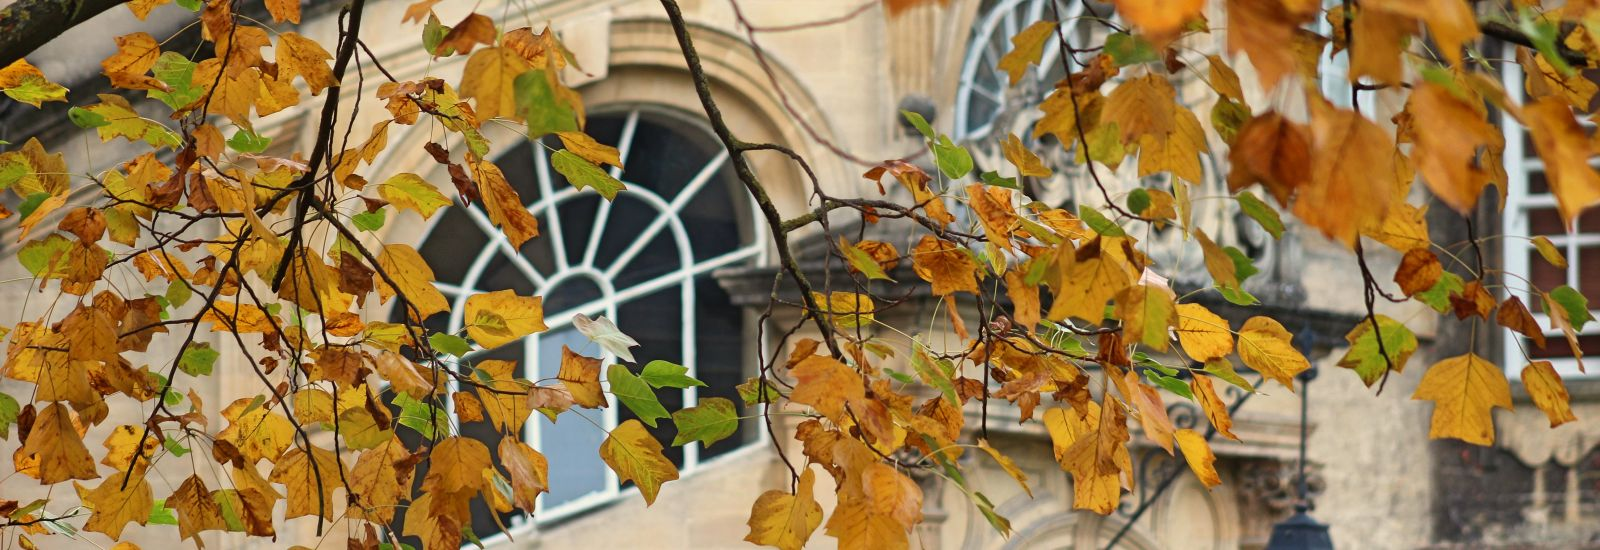 Orange leaves on a tree with a stone building behind